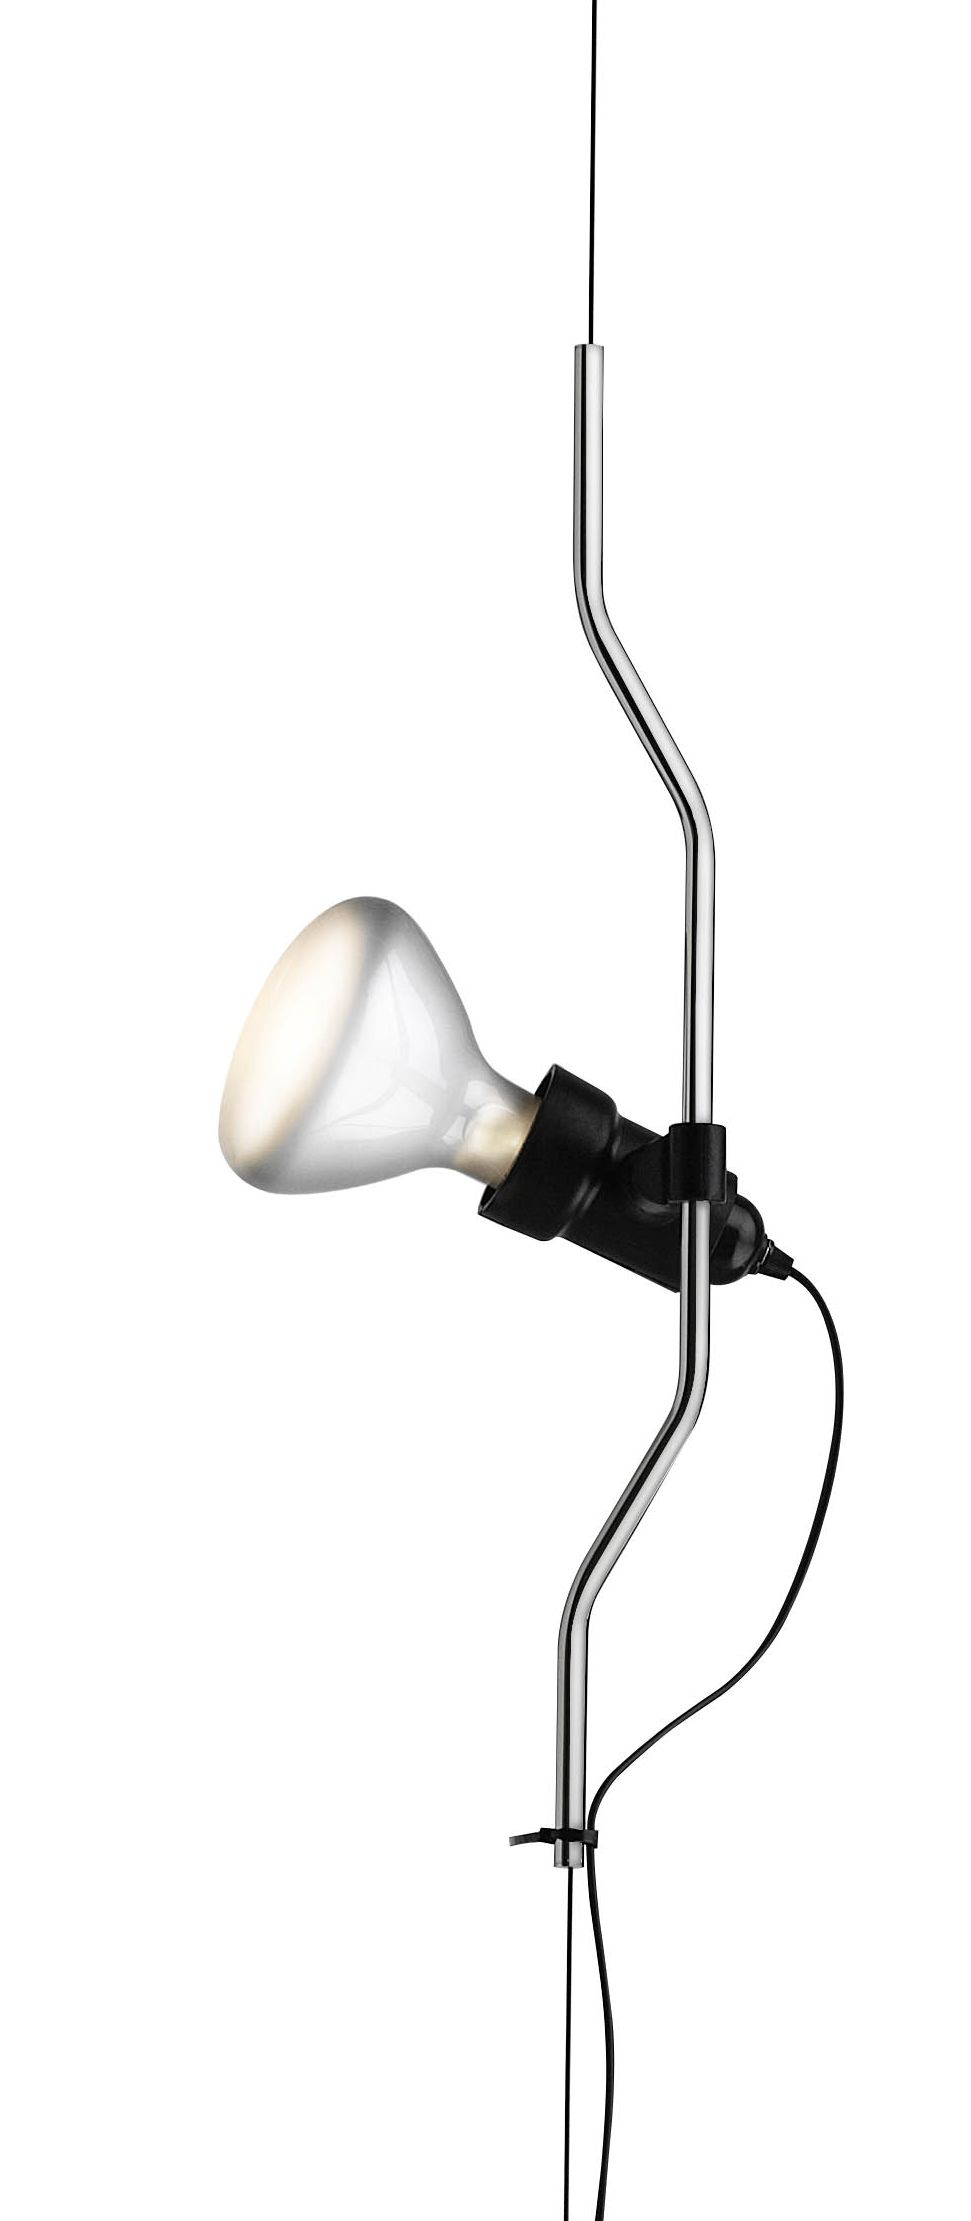 Nickel Complementary element for Flos lamp Parentesi On/Off